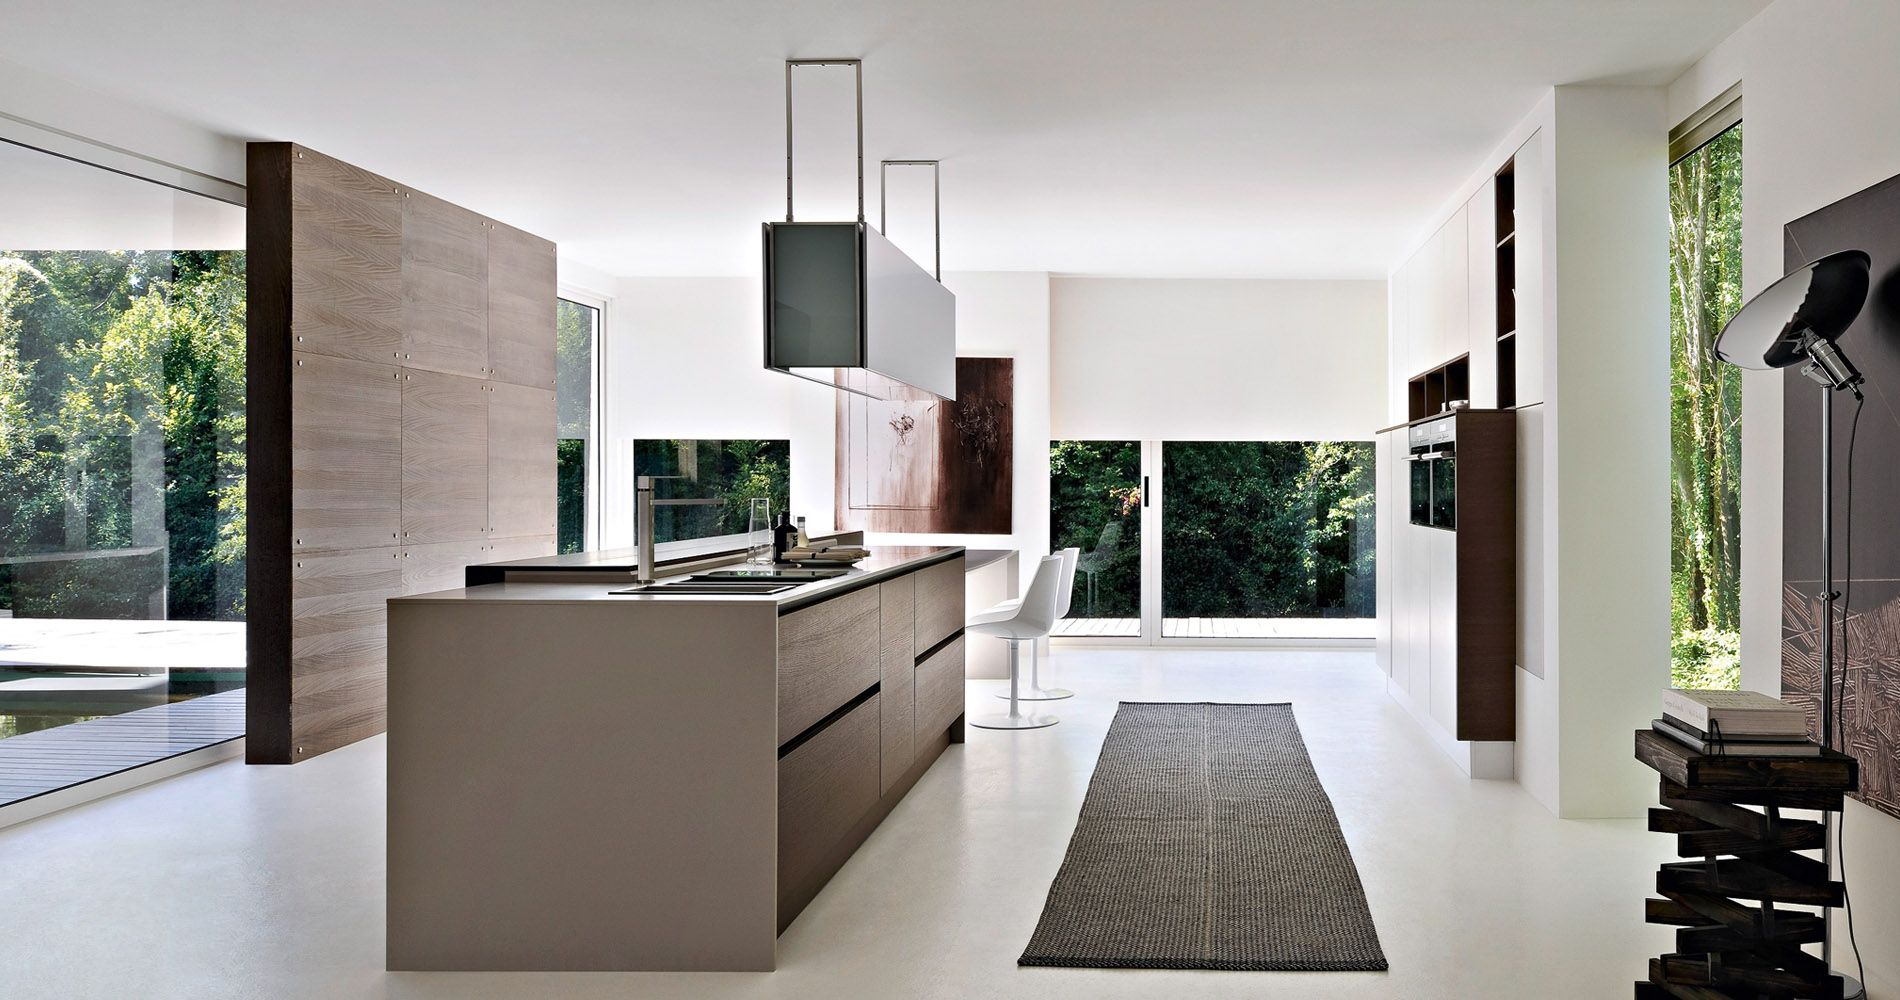 Best Pedini Kitchen Design Italian German European Modern 400 x 300